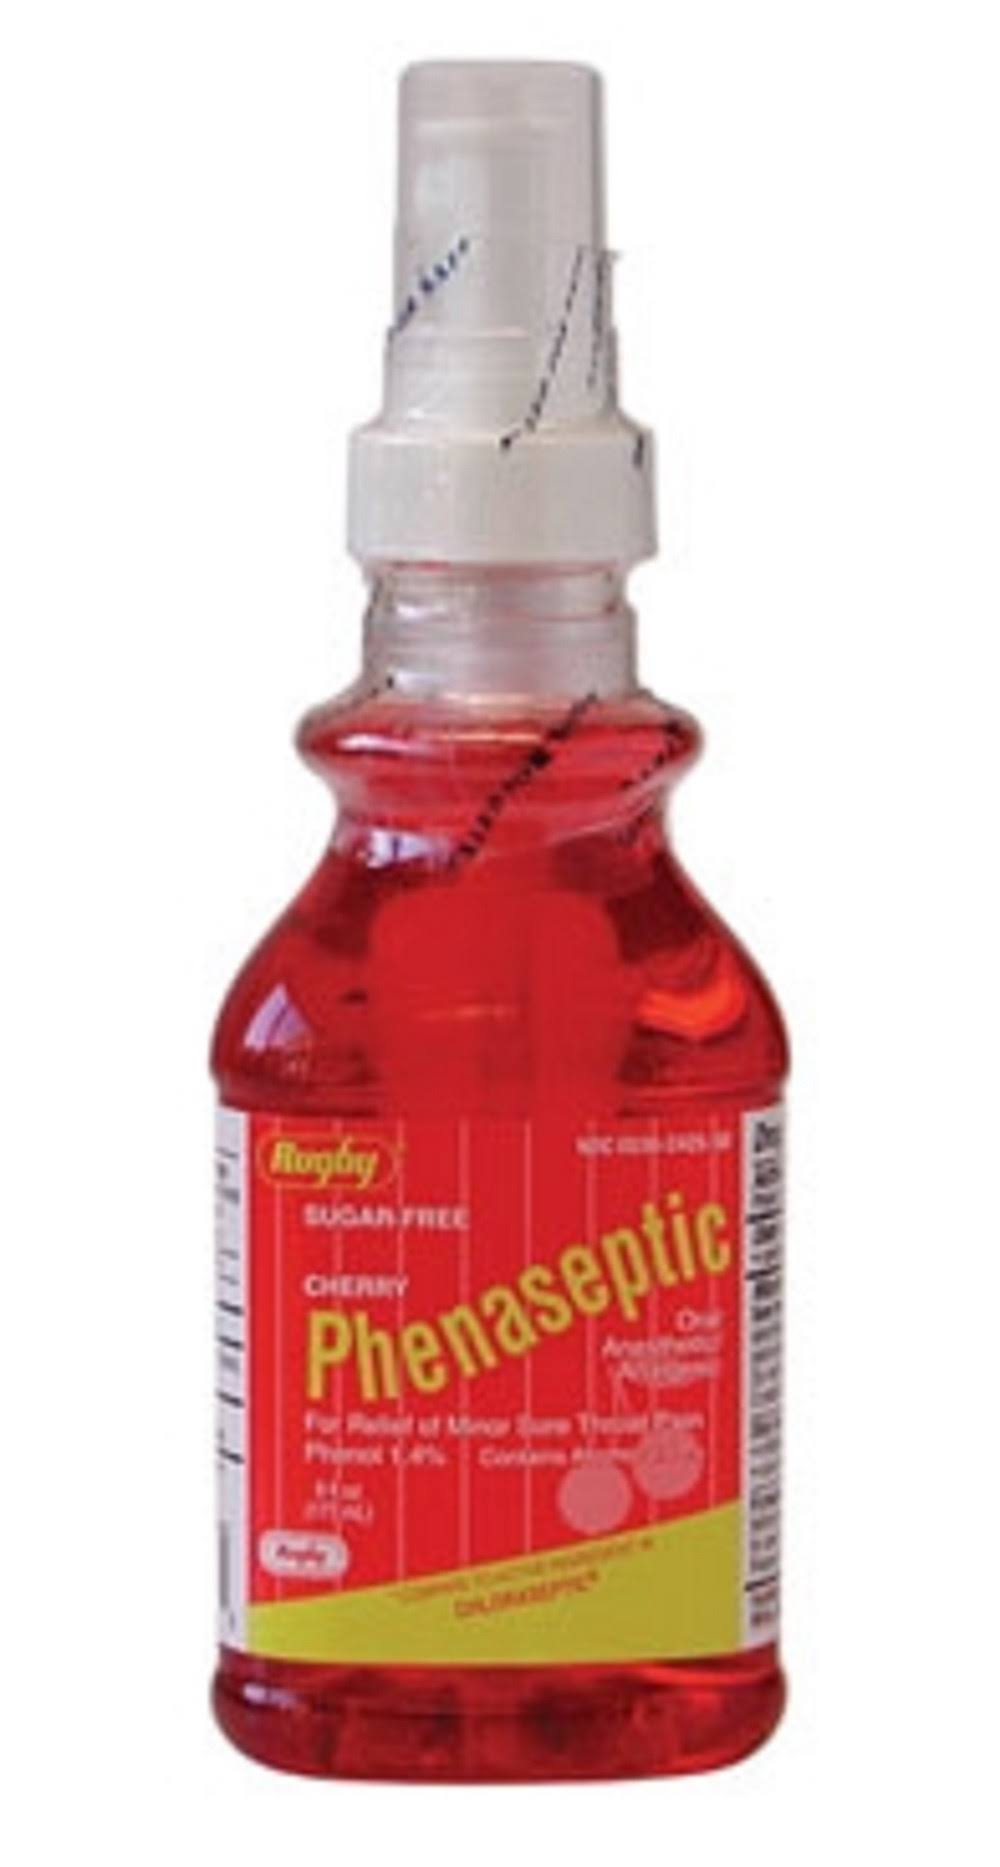 Rugby Phenaseptic Phenol-1 Red Throat Spray - 177ml